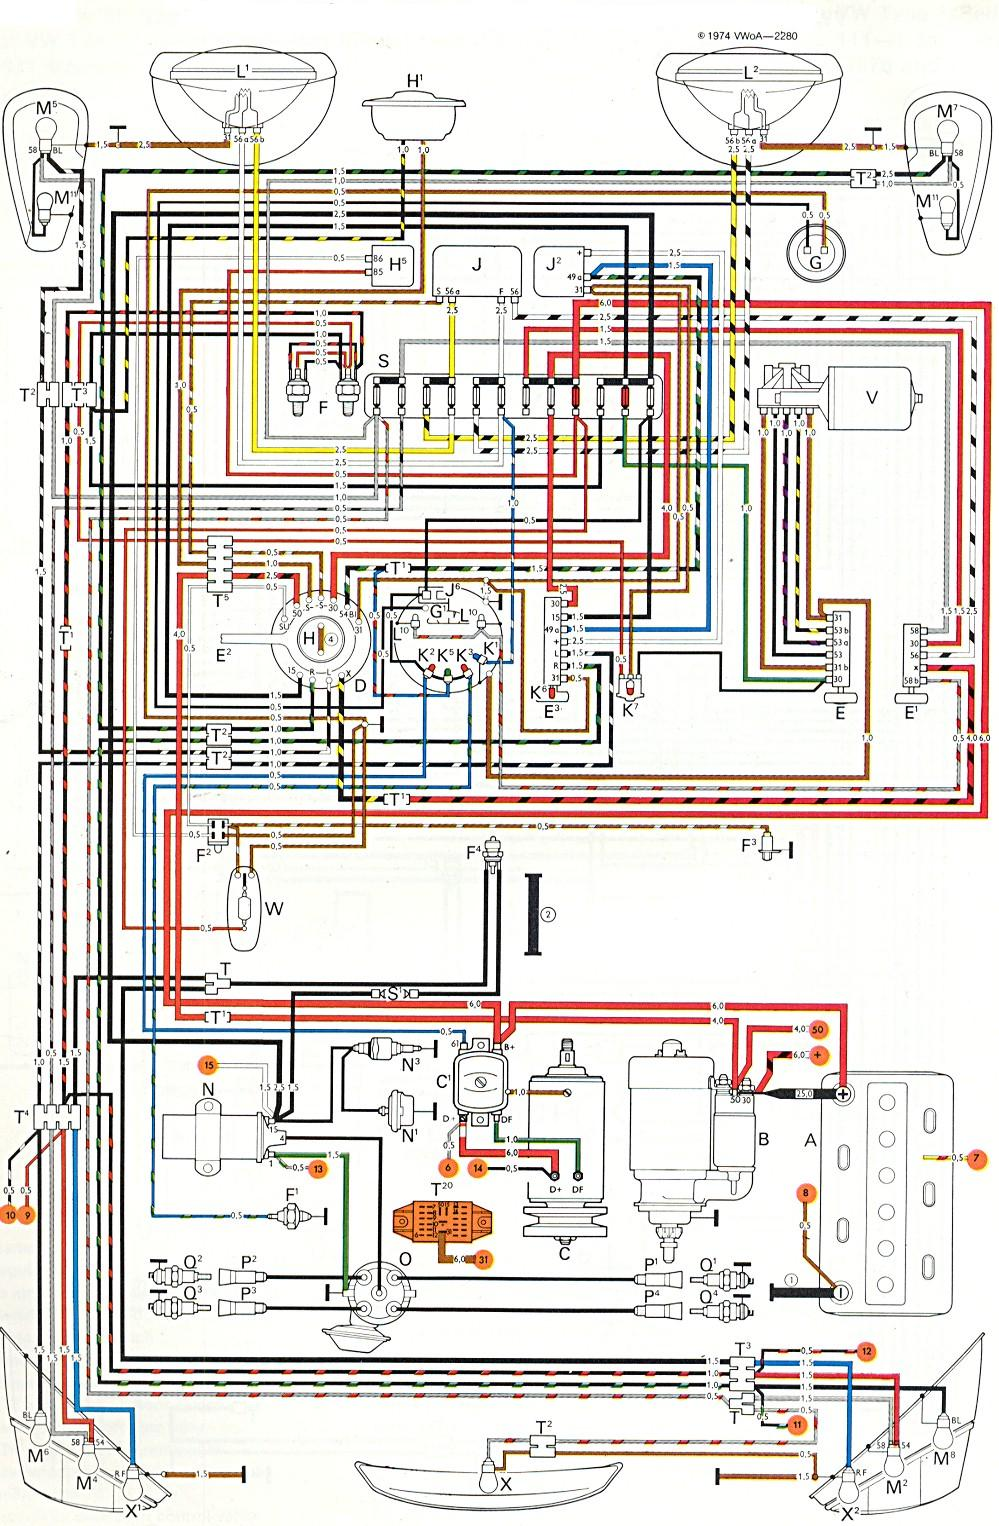 1979 Vw Super Beetle Wiring Diagram 1979 vw beetle fuel ... Vw Beetle Fuel Injection Wiring Diagram on